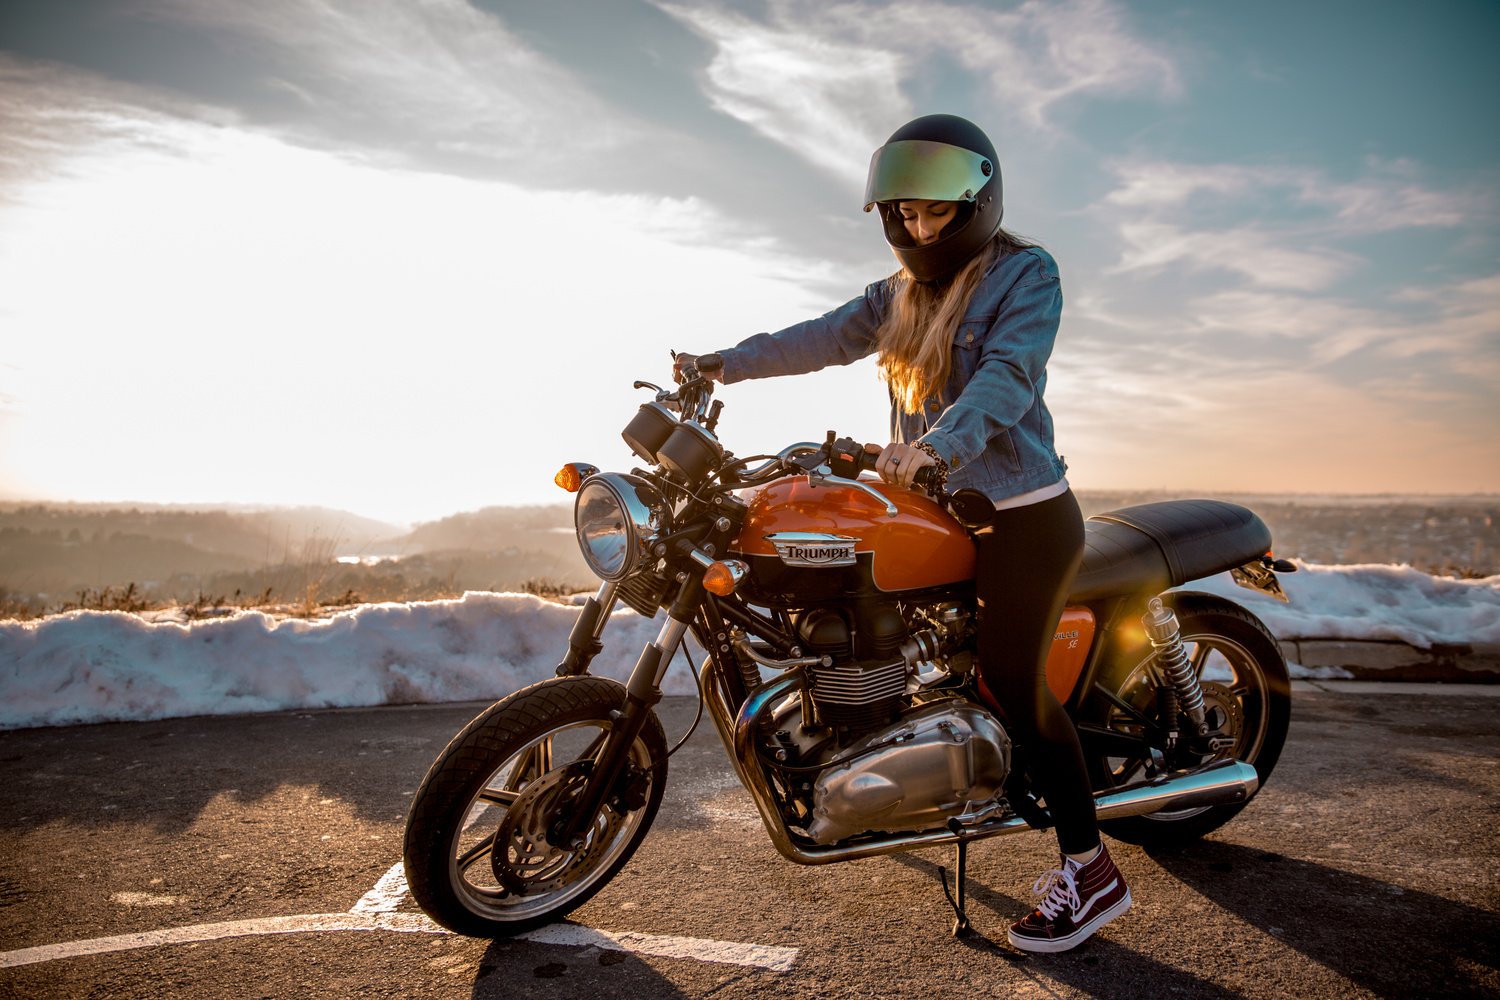 Bike Babe by Tanner Koonce